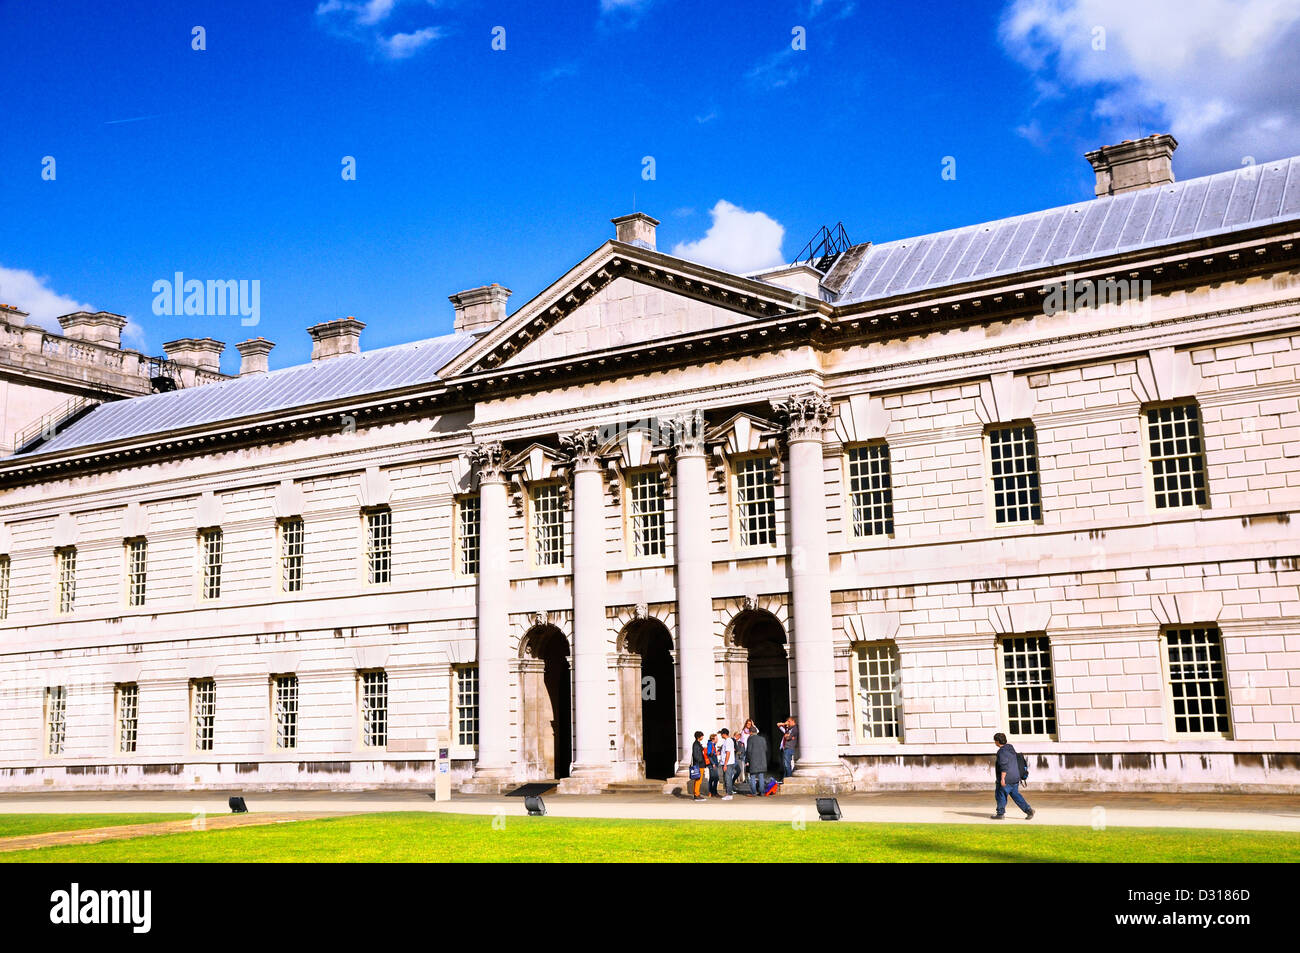 Stephen Lawrence Gallery and University of Greenwich, Queen Anne Court, Old Royal Naval College, Greenwich, London, - Stock Image